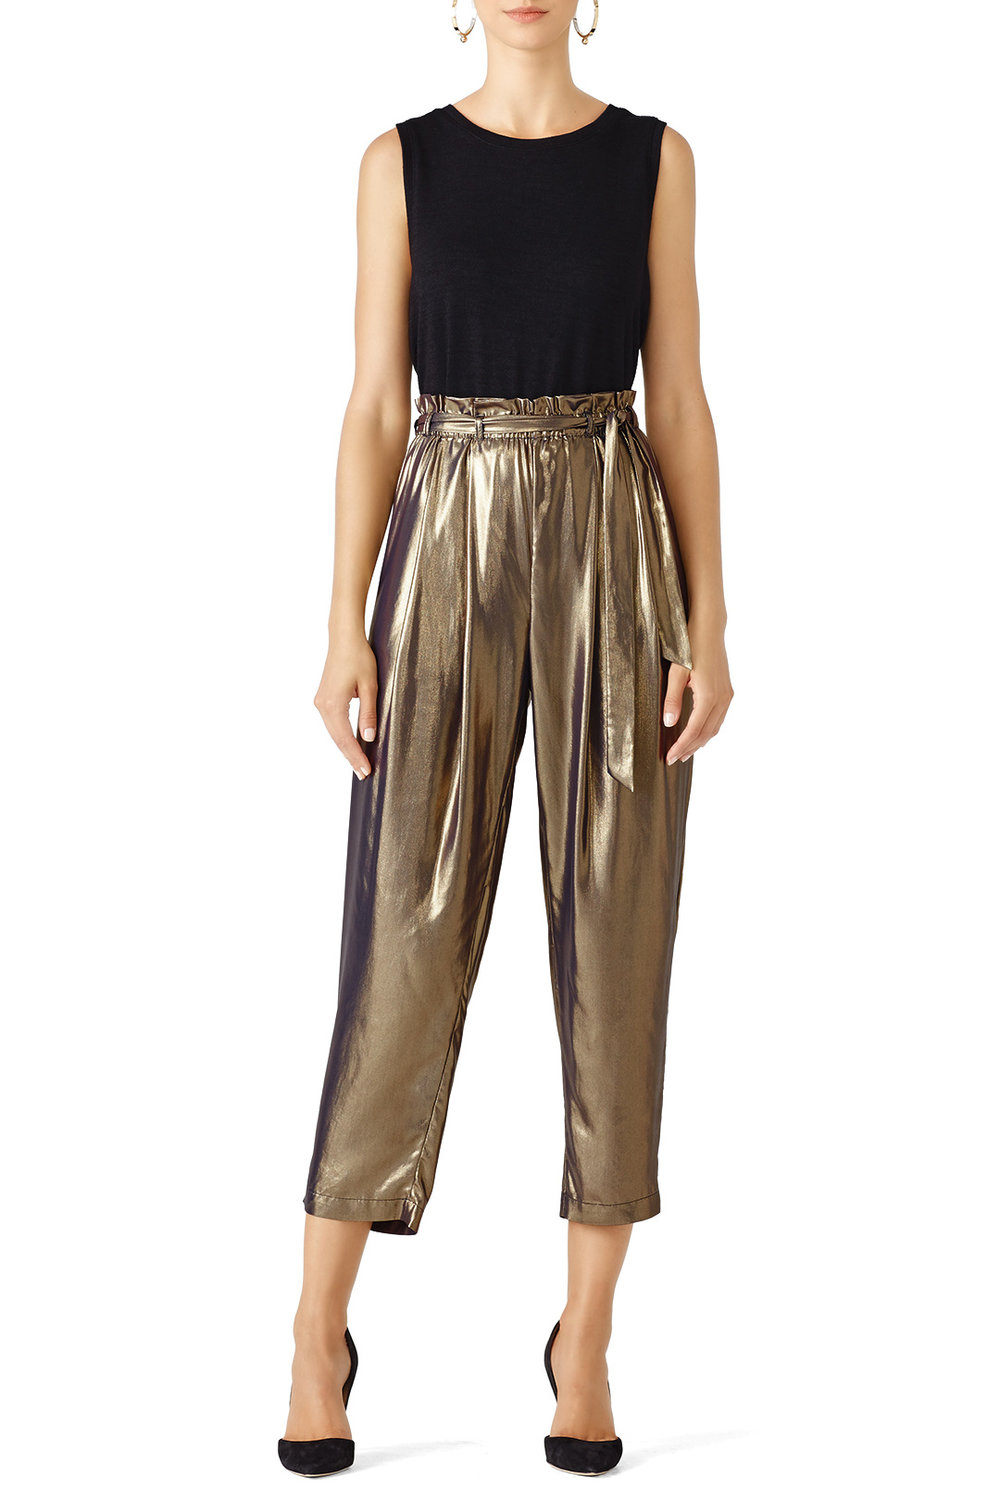 Free People Gold Harem Pant - If these don't scream party pants IDK what does. I'm planning to wear these to dinner on Christmas Eve. Again… I think Linda will hate them.